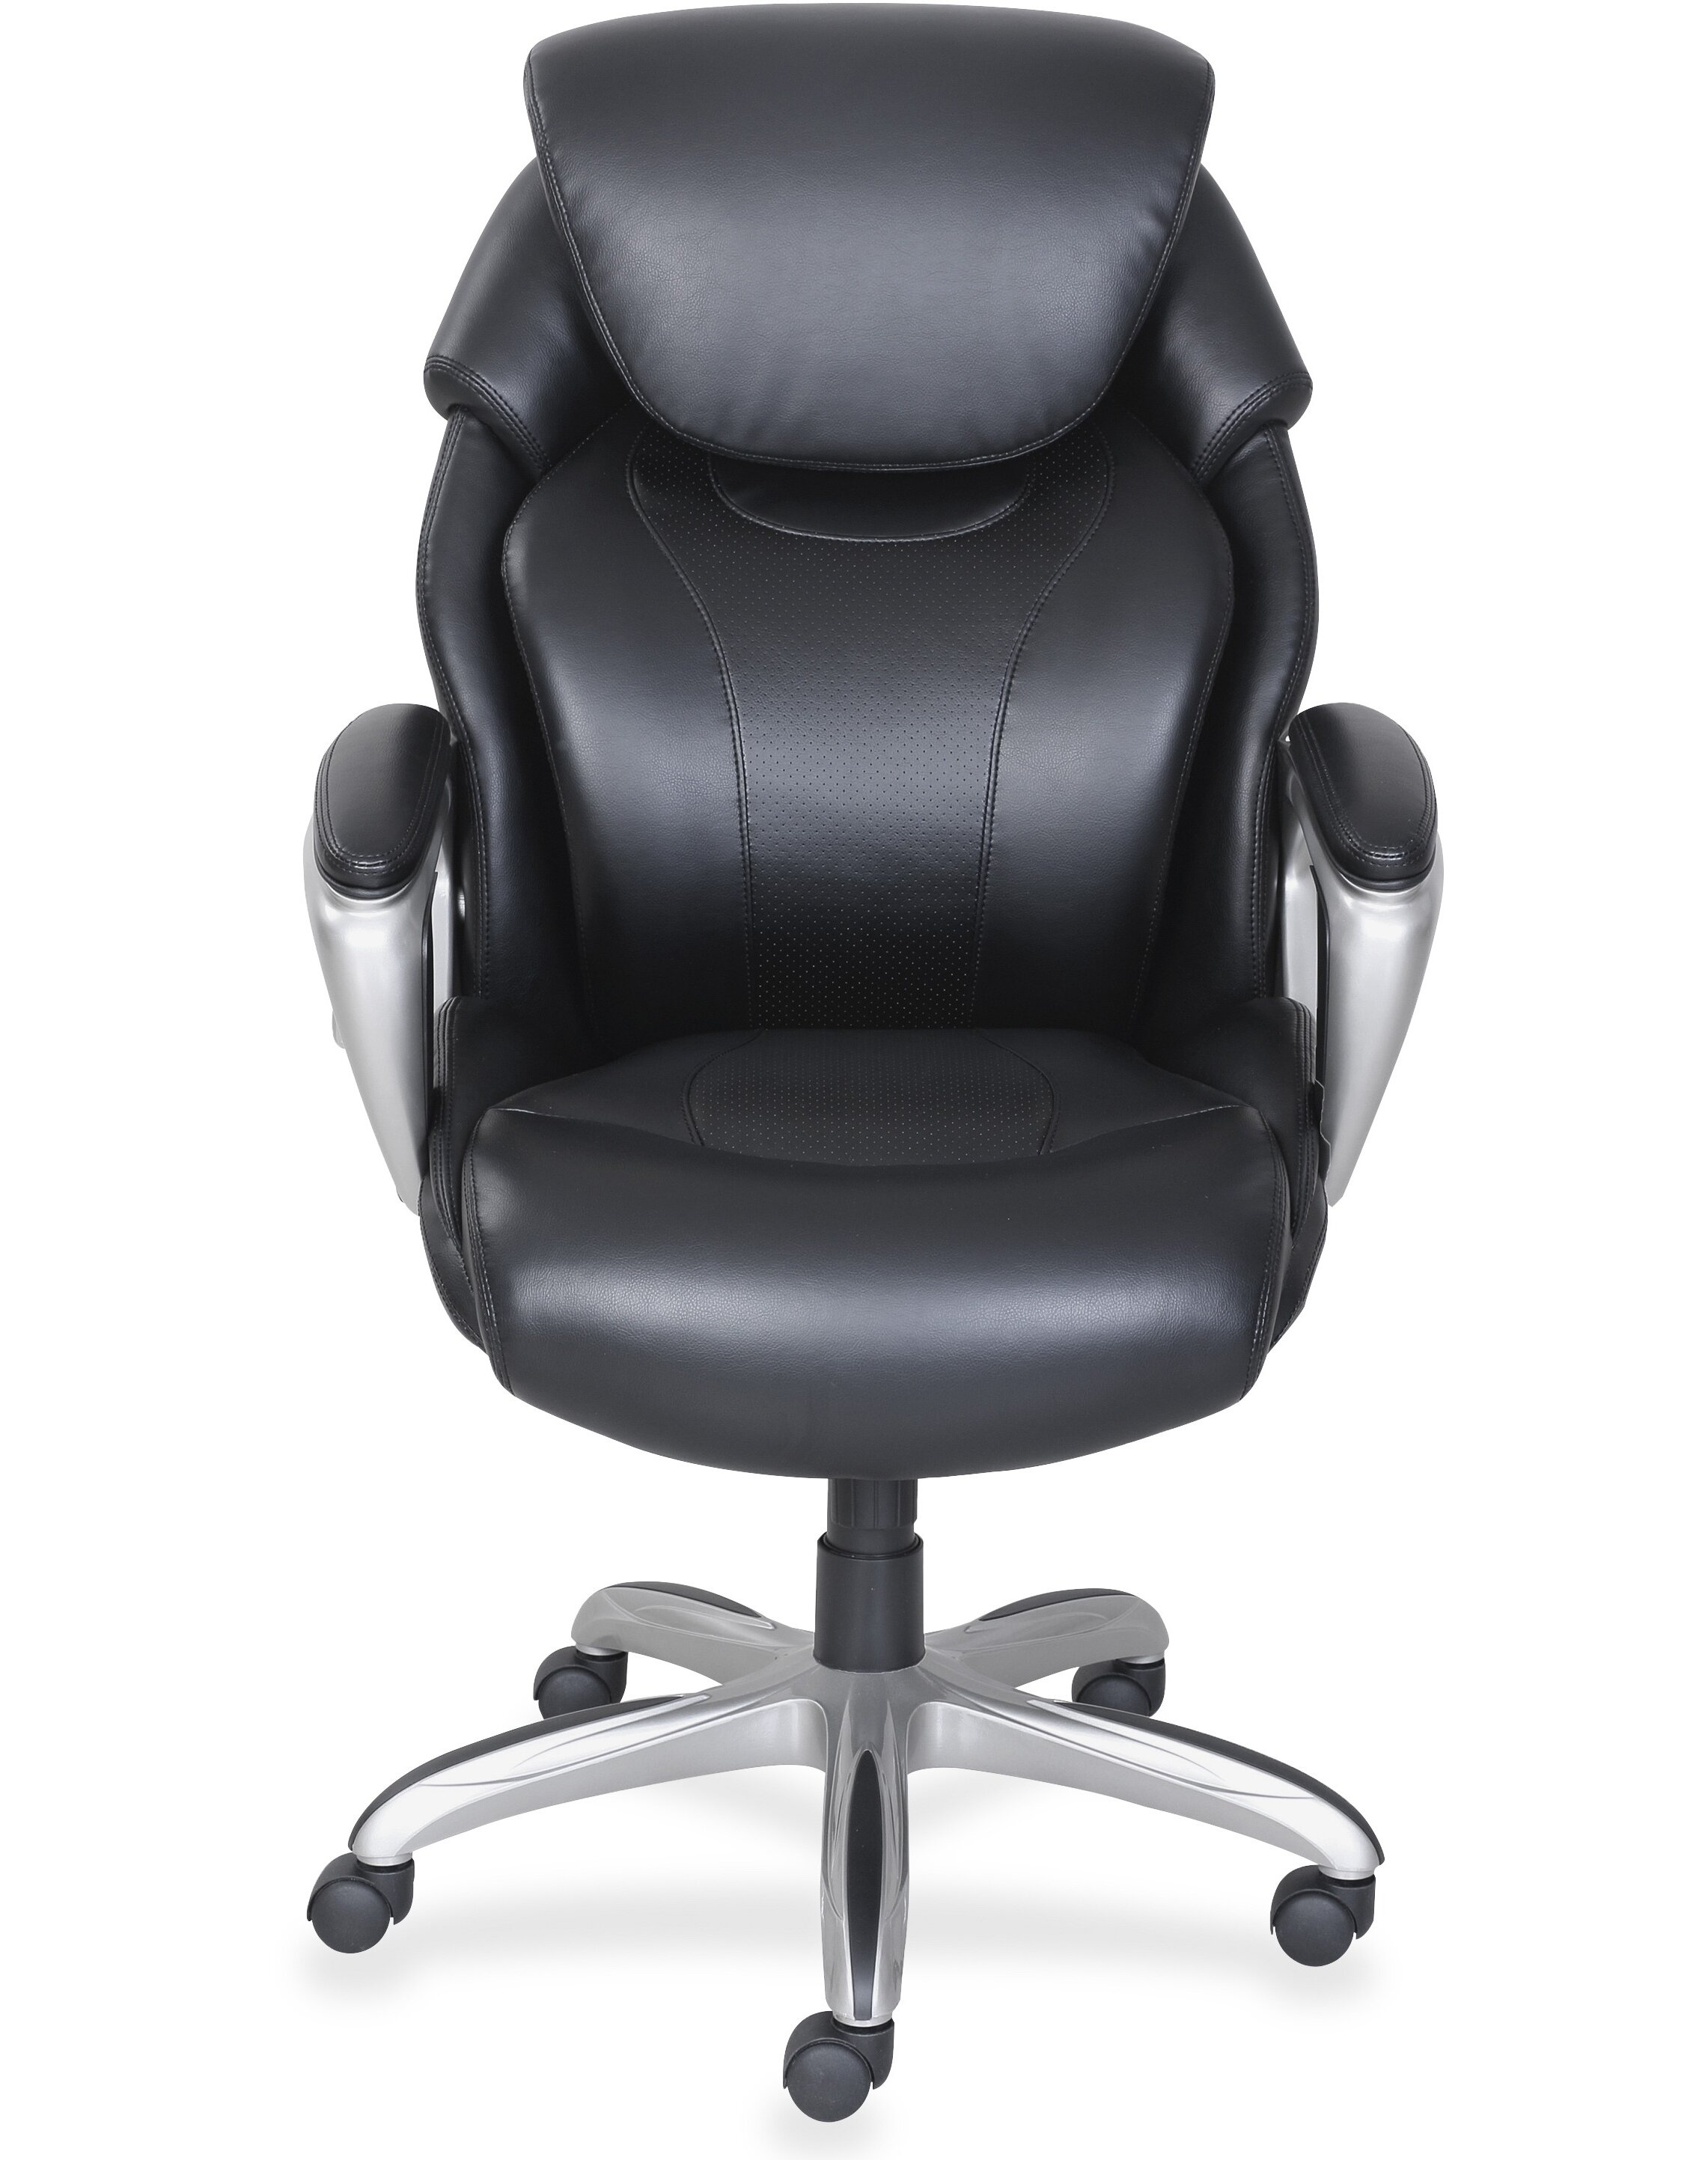 Lorell Wellness By Design High Back Executive Chair Wayfair